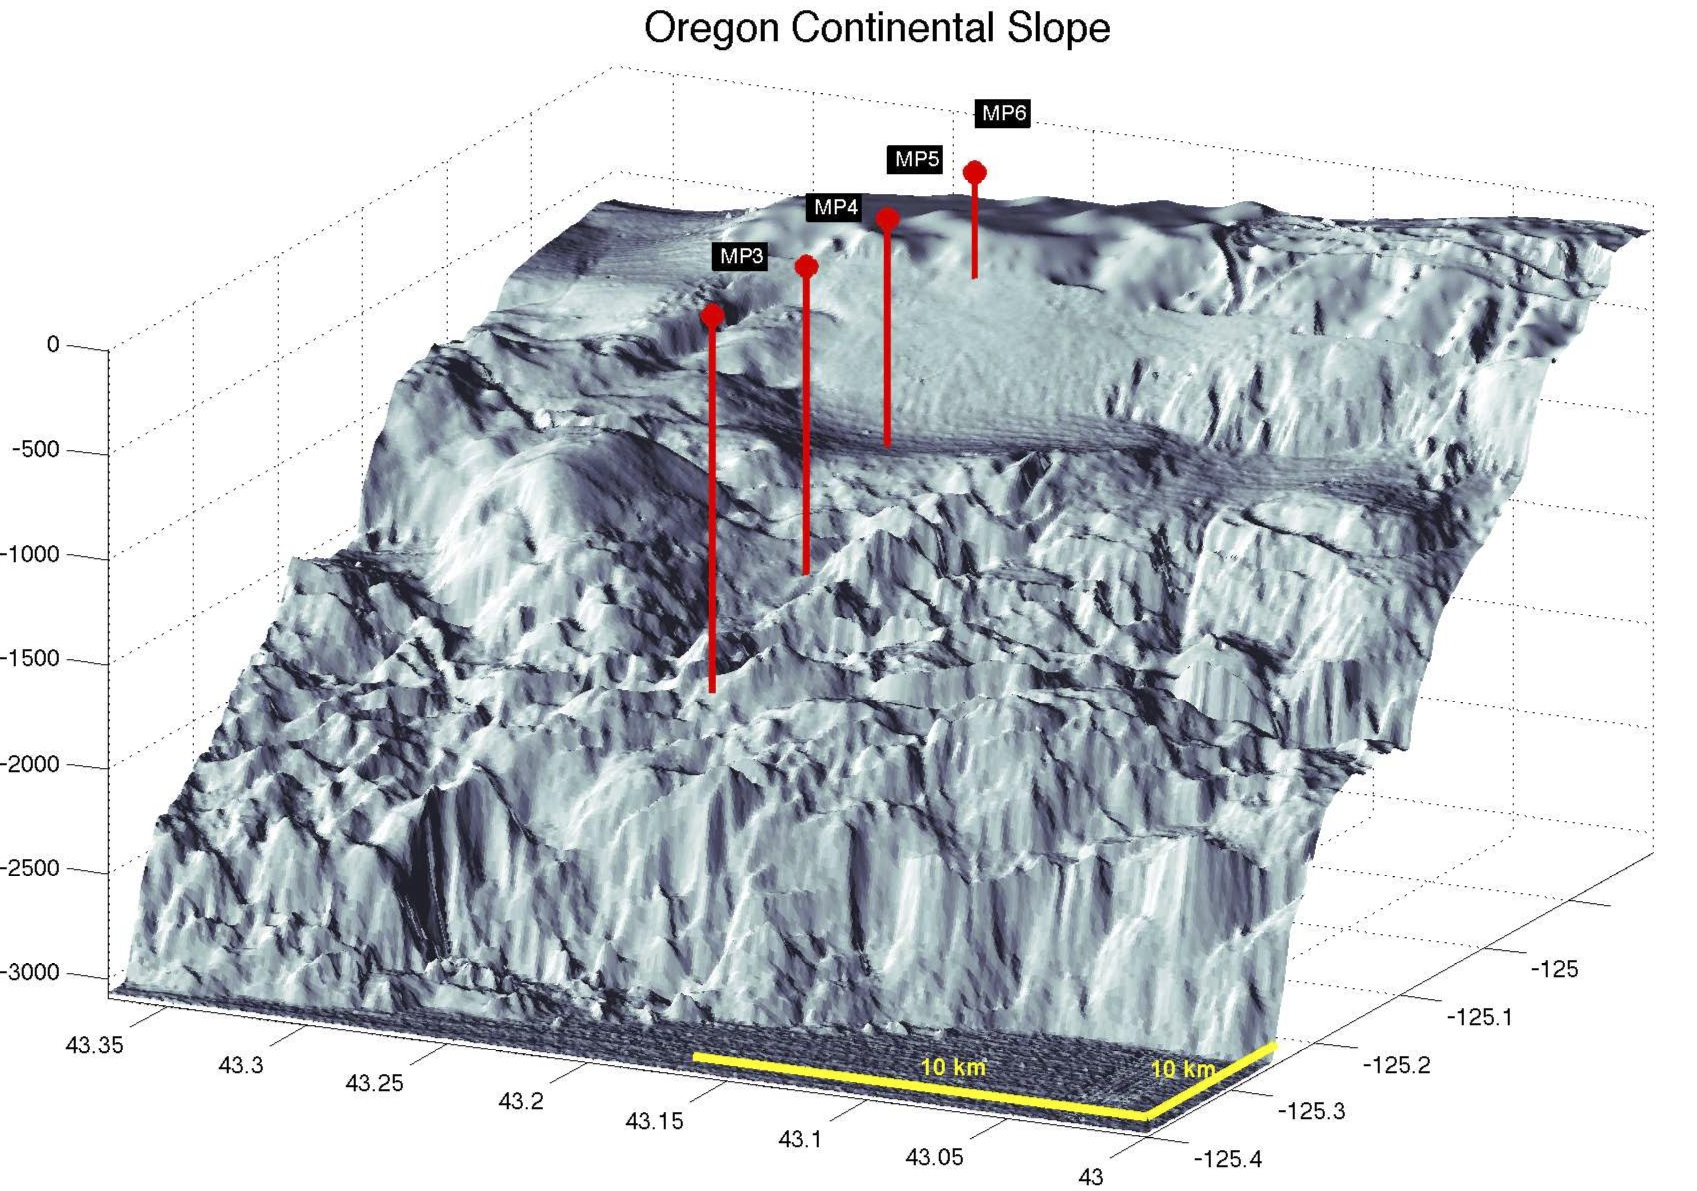 Bathymetric relief of the Oregon Continental Slope.